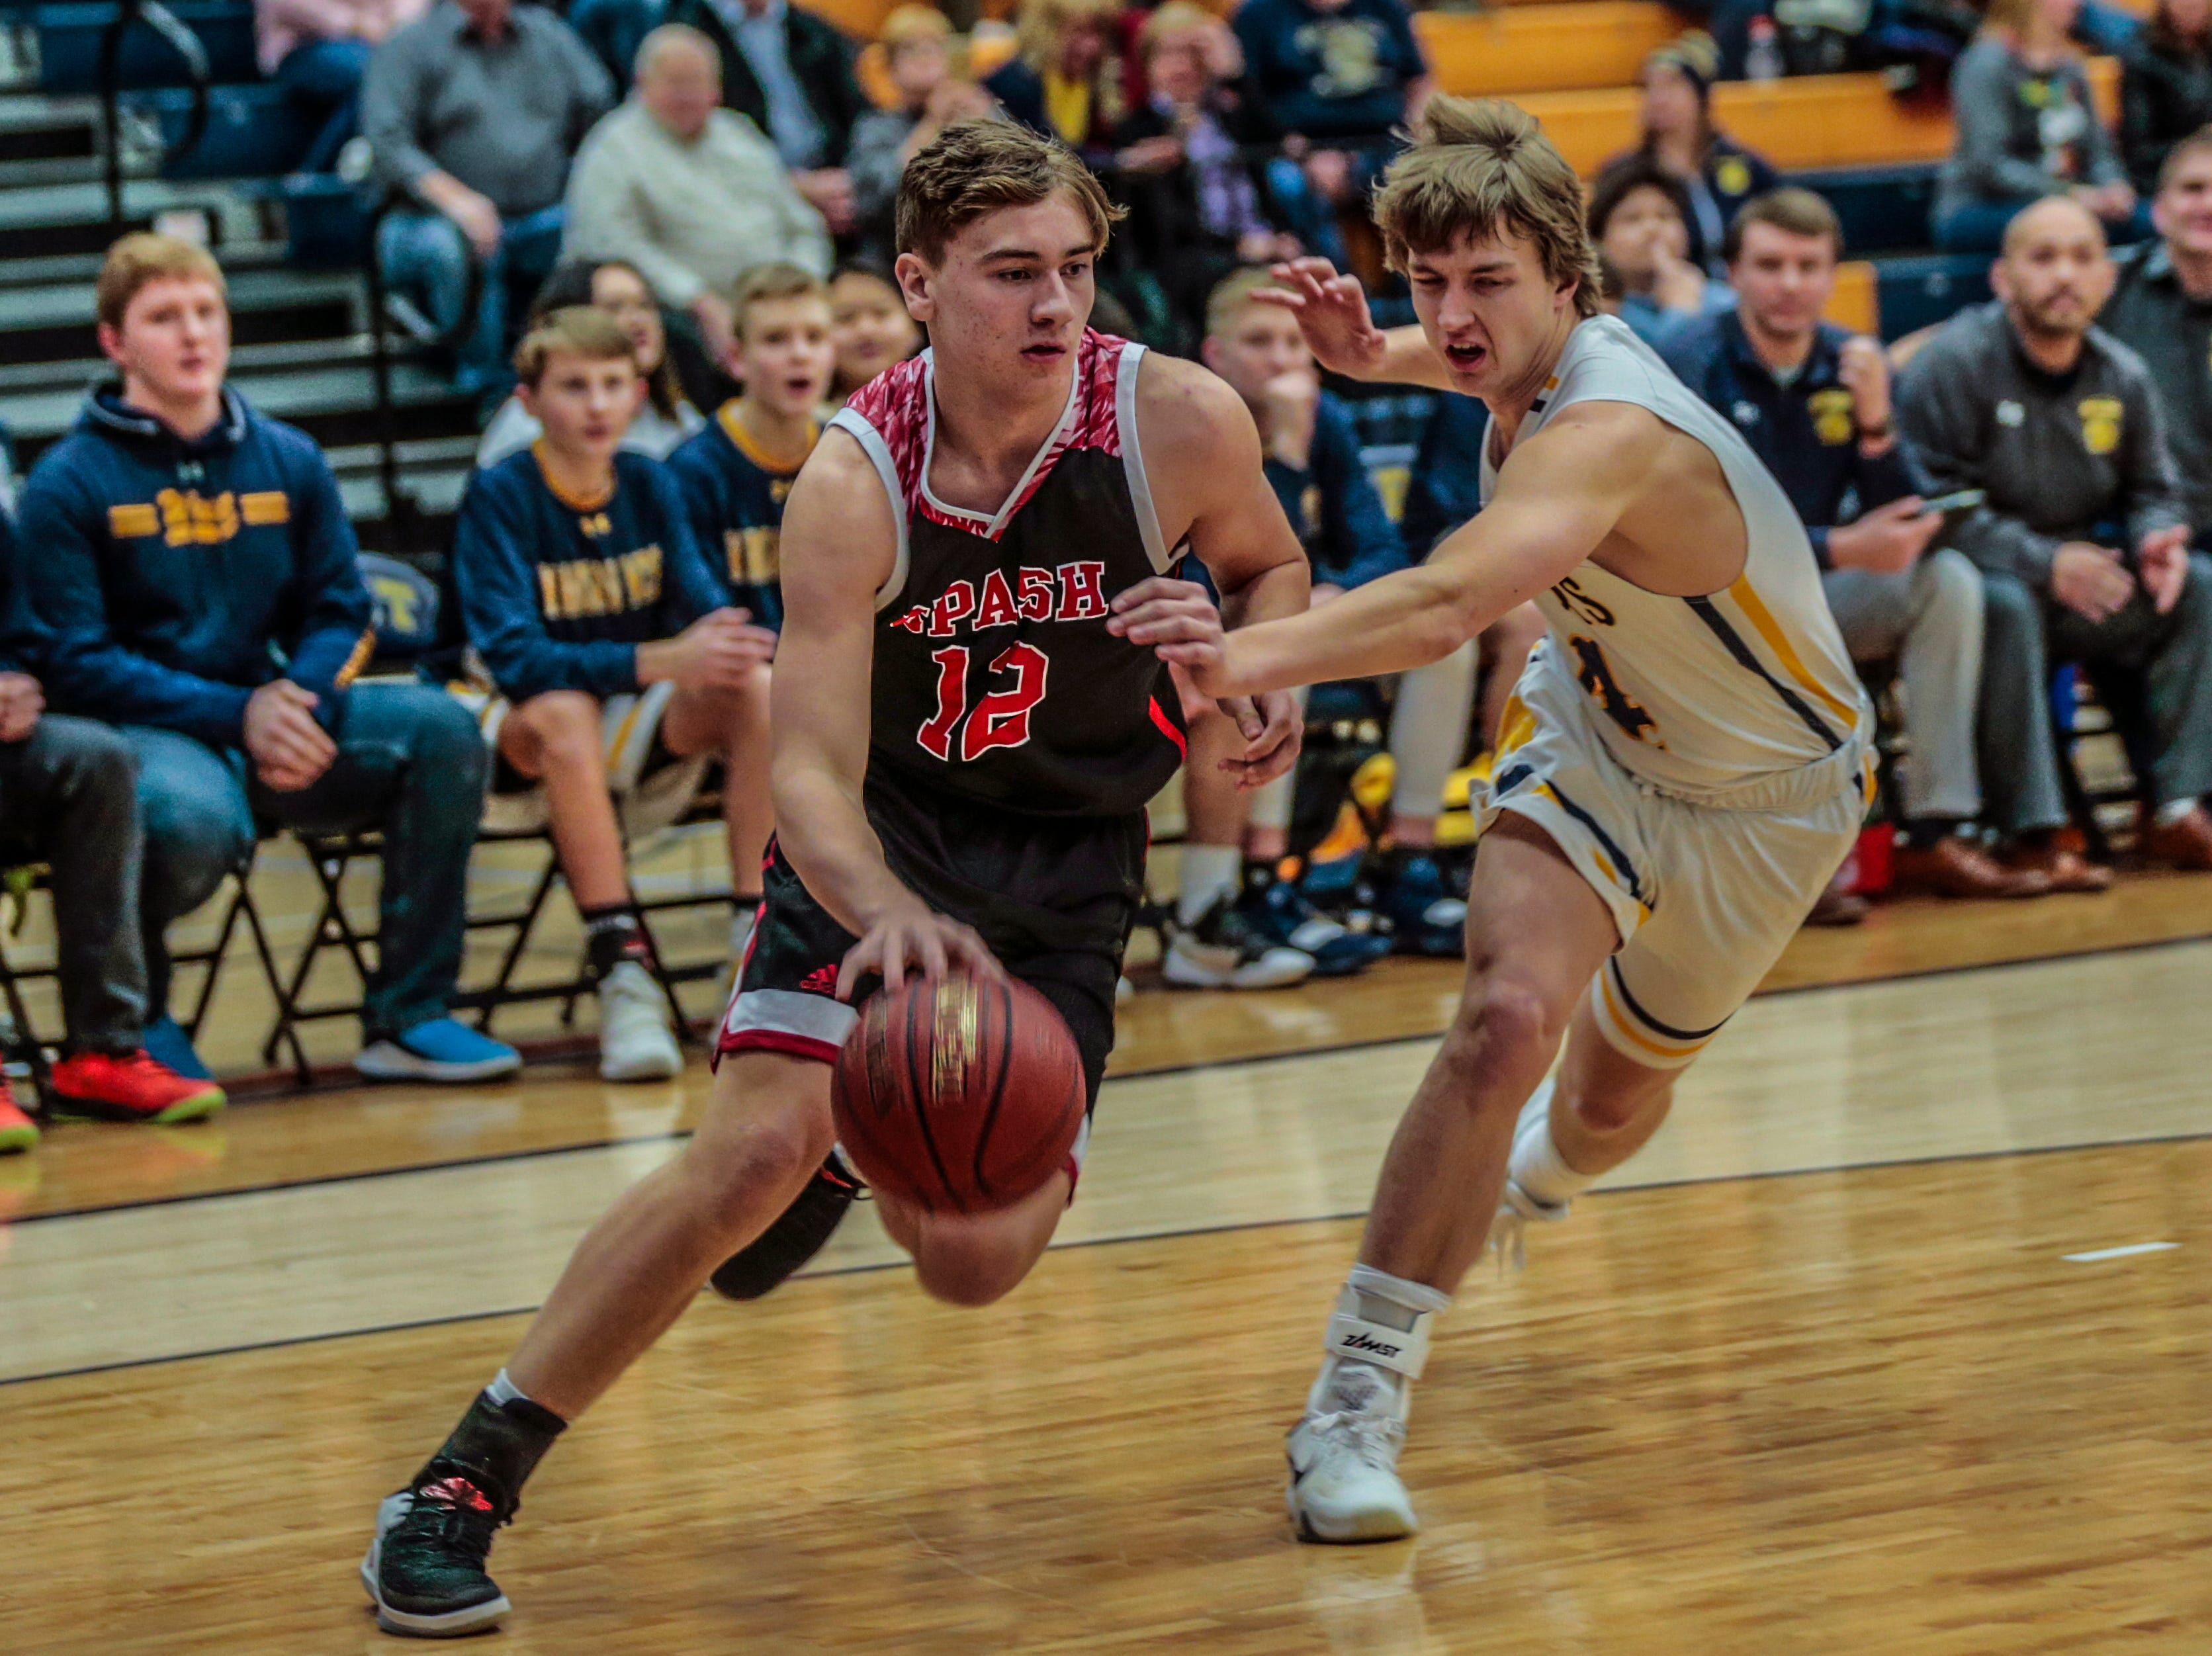 SPASH's Evan Vollendorf(12), left, dribbles pass West's Seth Kohl(4) during Wisconsin Valley Conference boys basketball game Friday, Feb. 15, 2019, at Wausau West High School in Wausau, Wis. T'xer Zhon Kha/USA TODAY NETWORK-Wisconsin